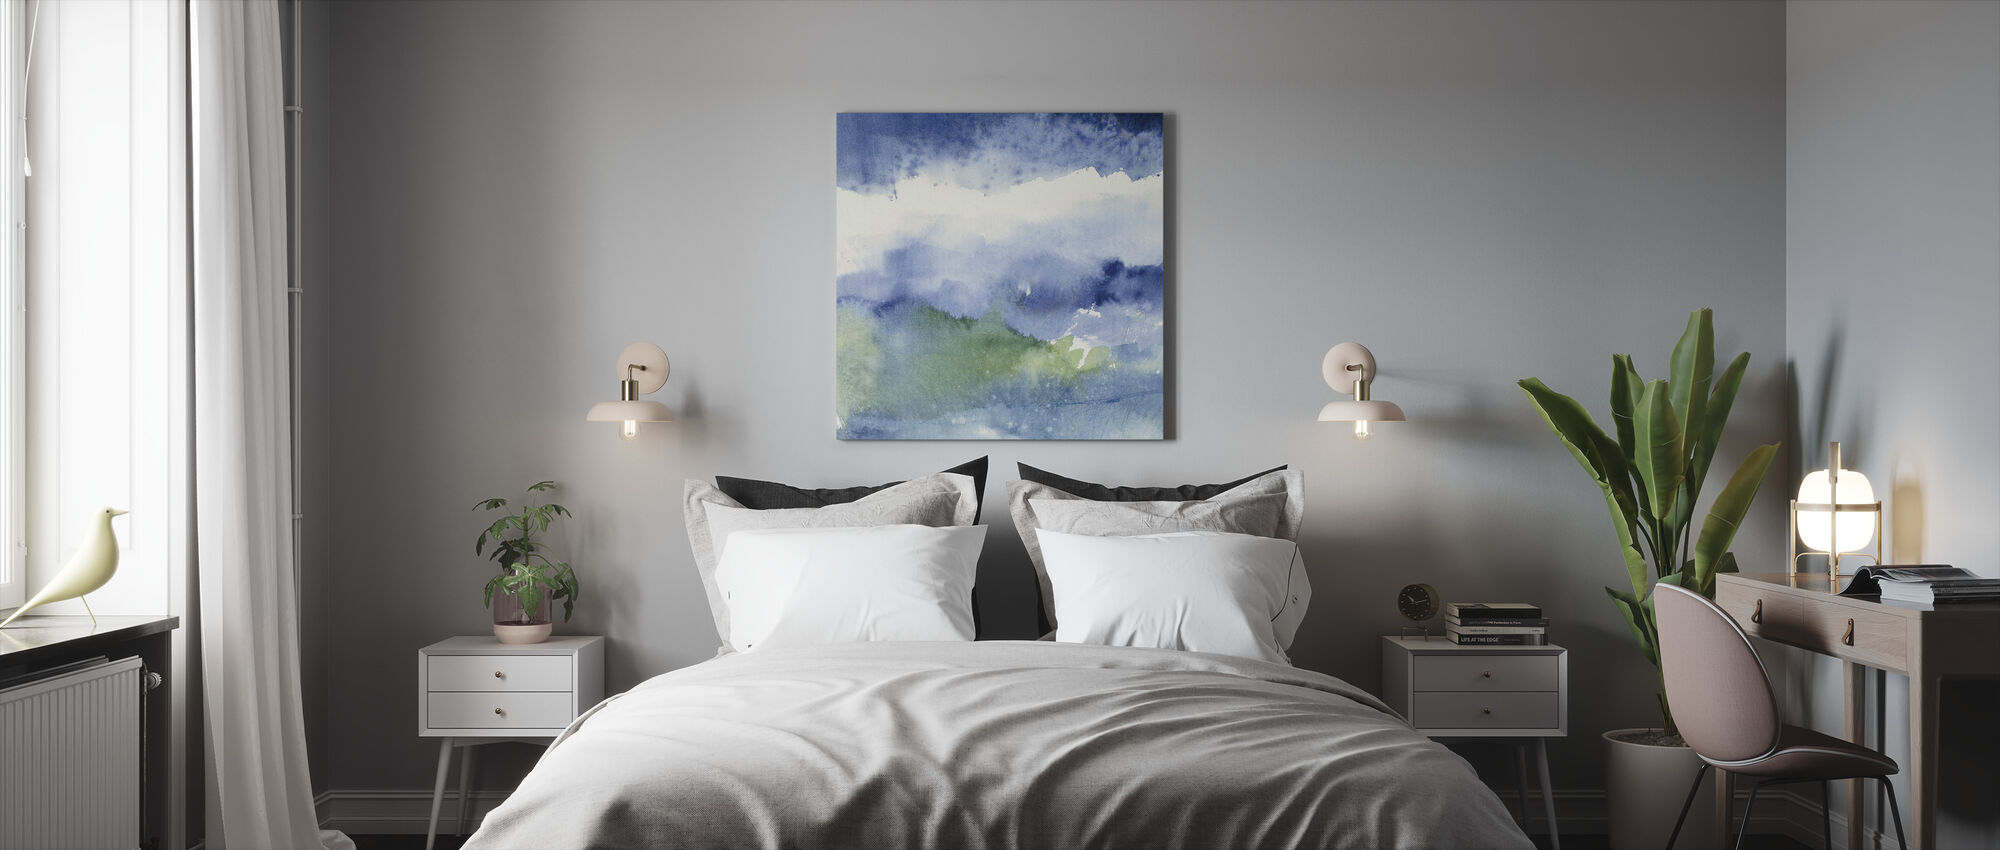 Midnight at the Lake 2 - Canvas print - Bedroom